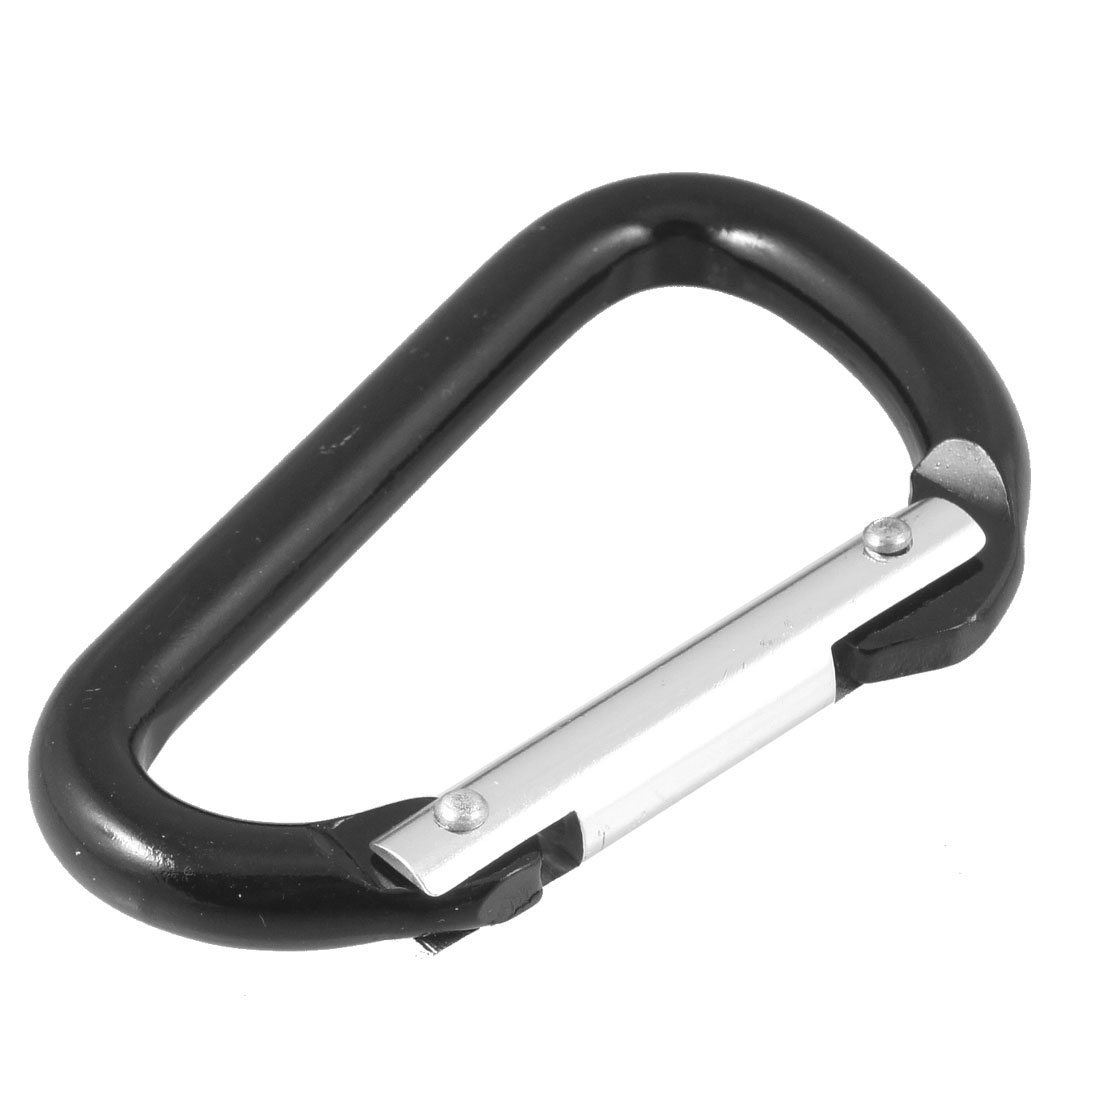 "3.7"" Length Black Aluminum Alloy D Shaped Spring Load Gate Carabiners"